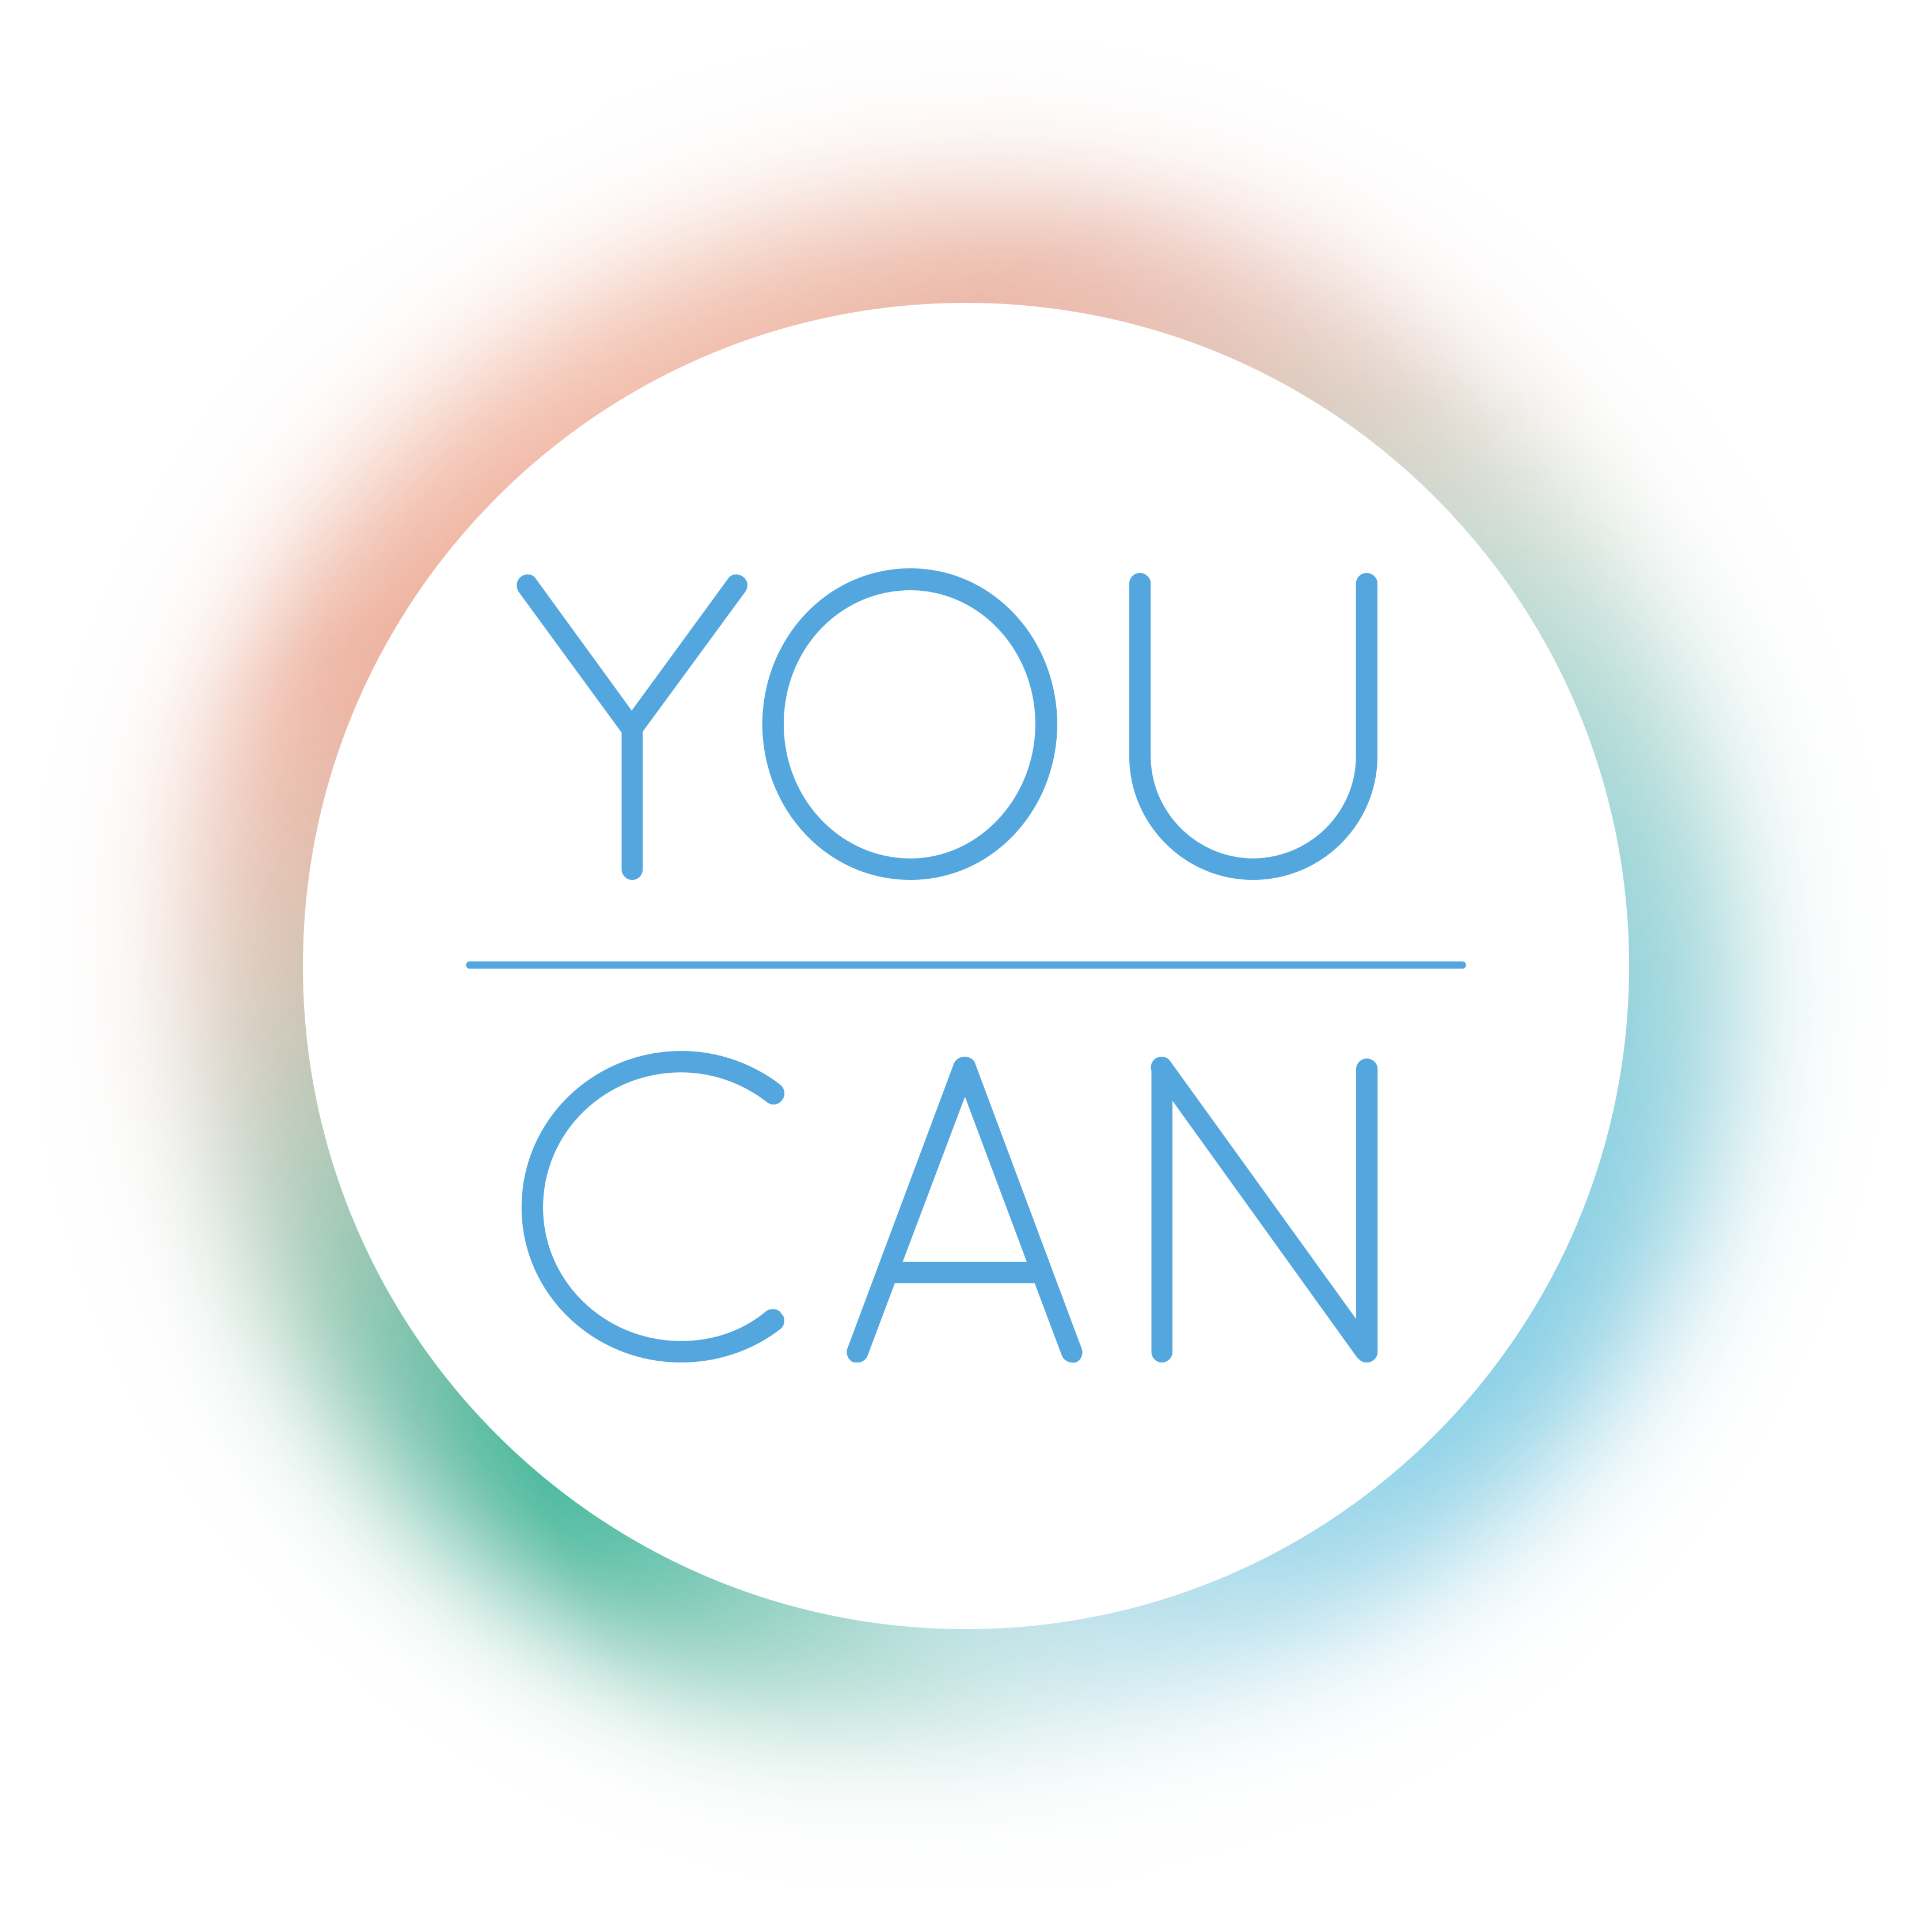 You-Can-brand-badge-transparent